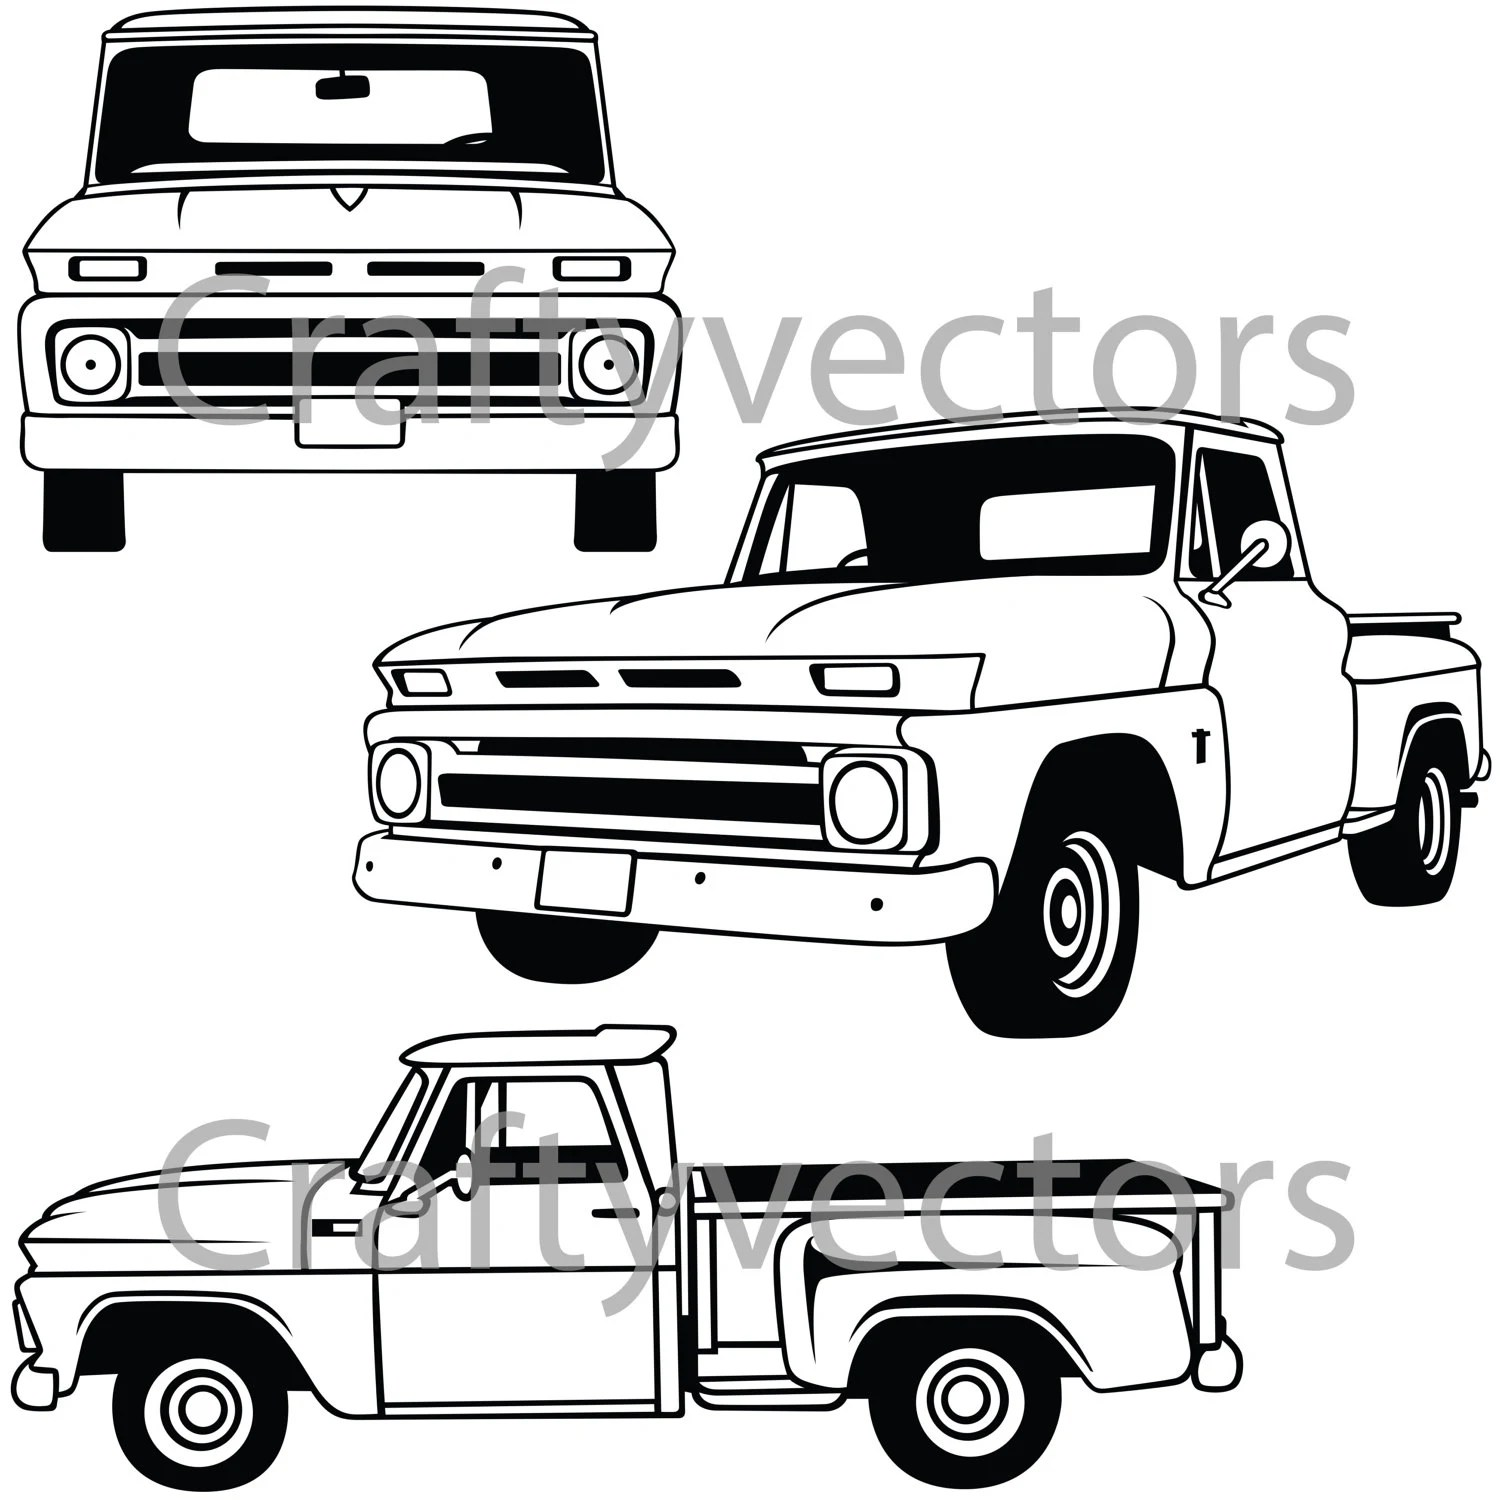 1966 chevrolet pick up auto electrical wiring diagramchevy c10 stepside vector file